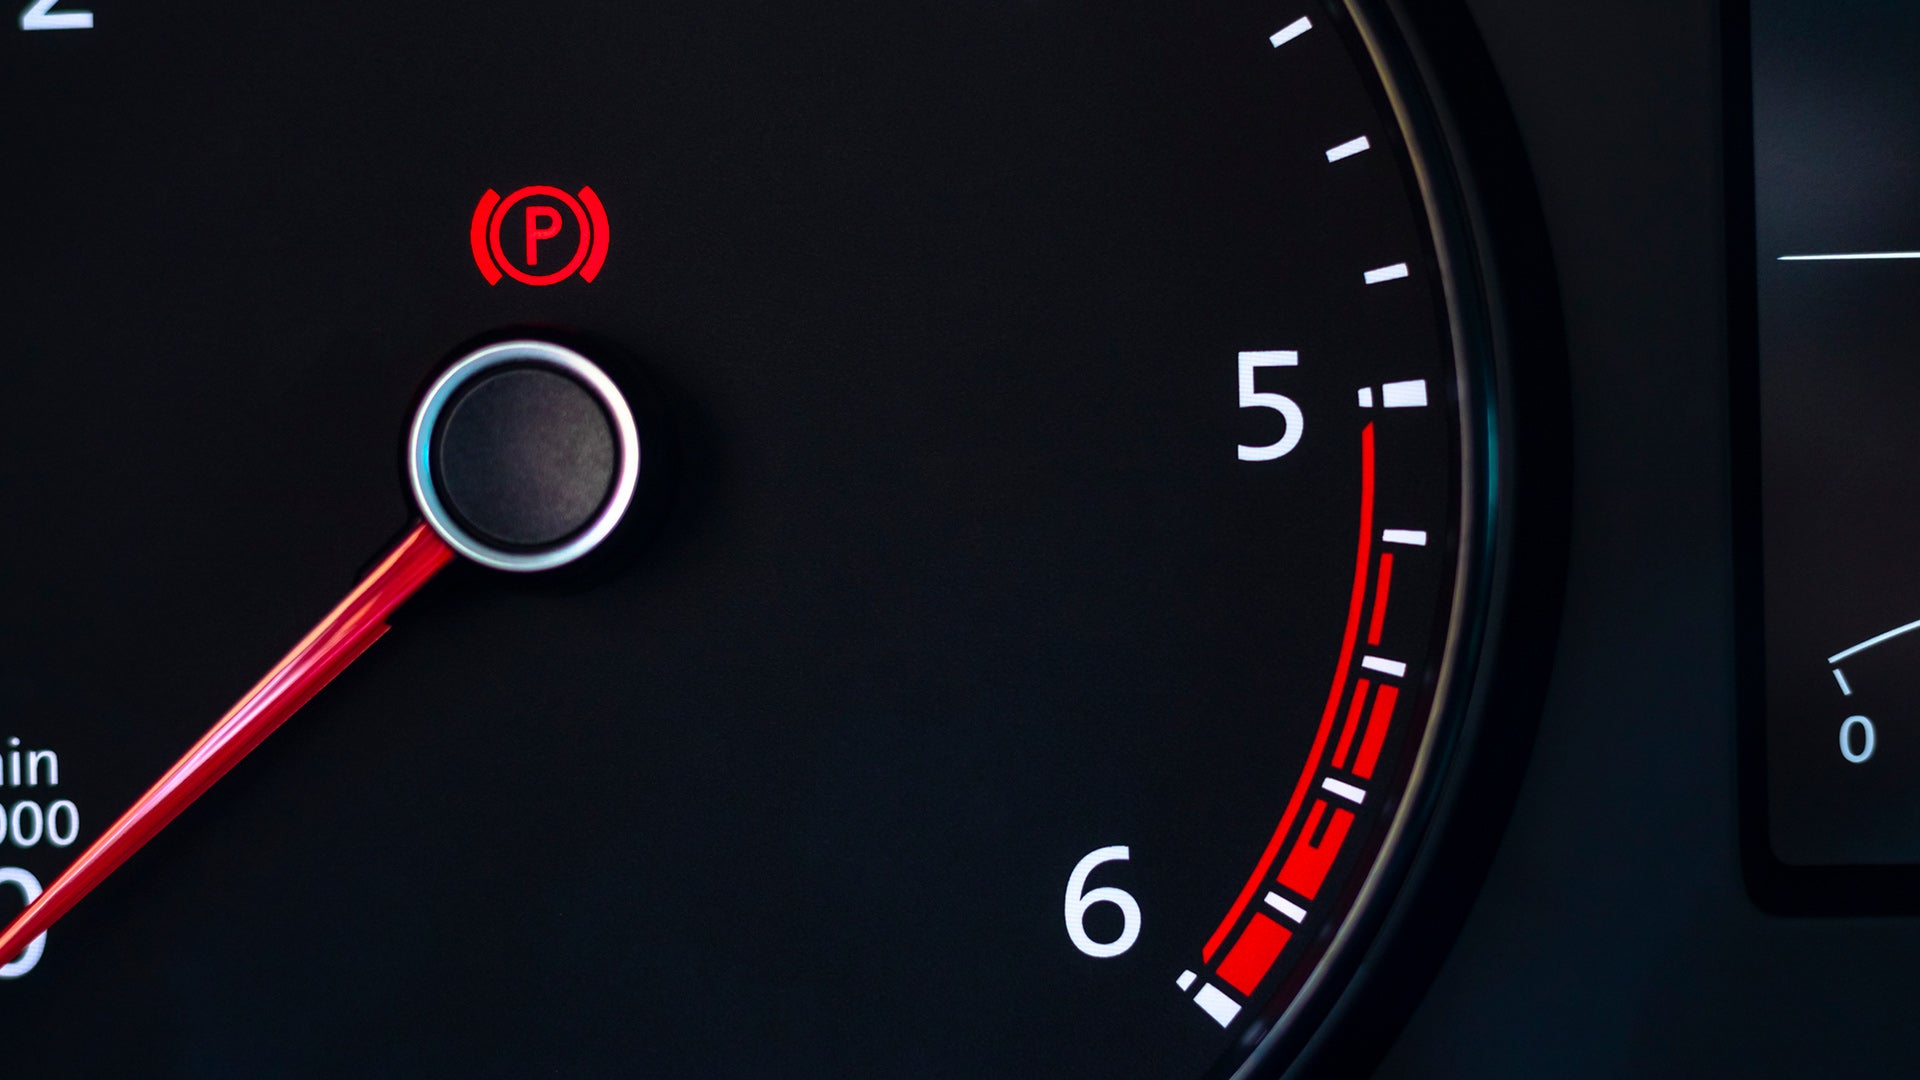 A car tachometer with the parking brake light on.